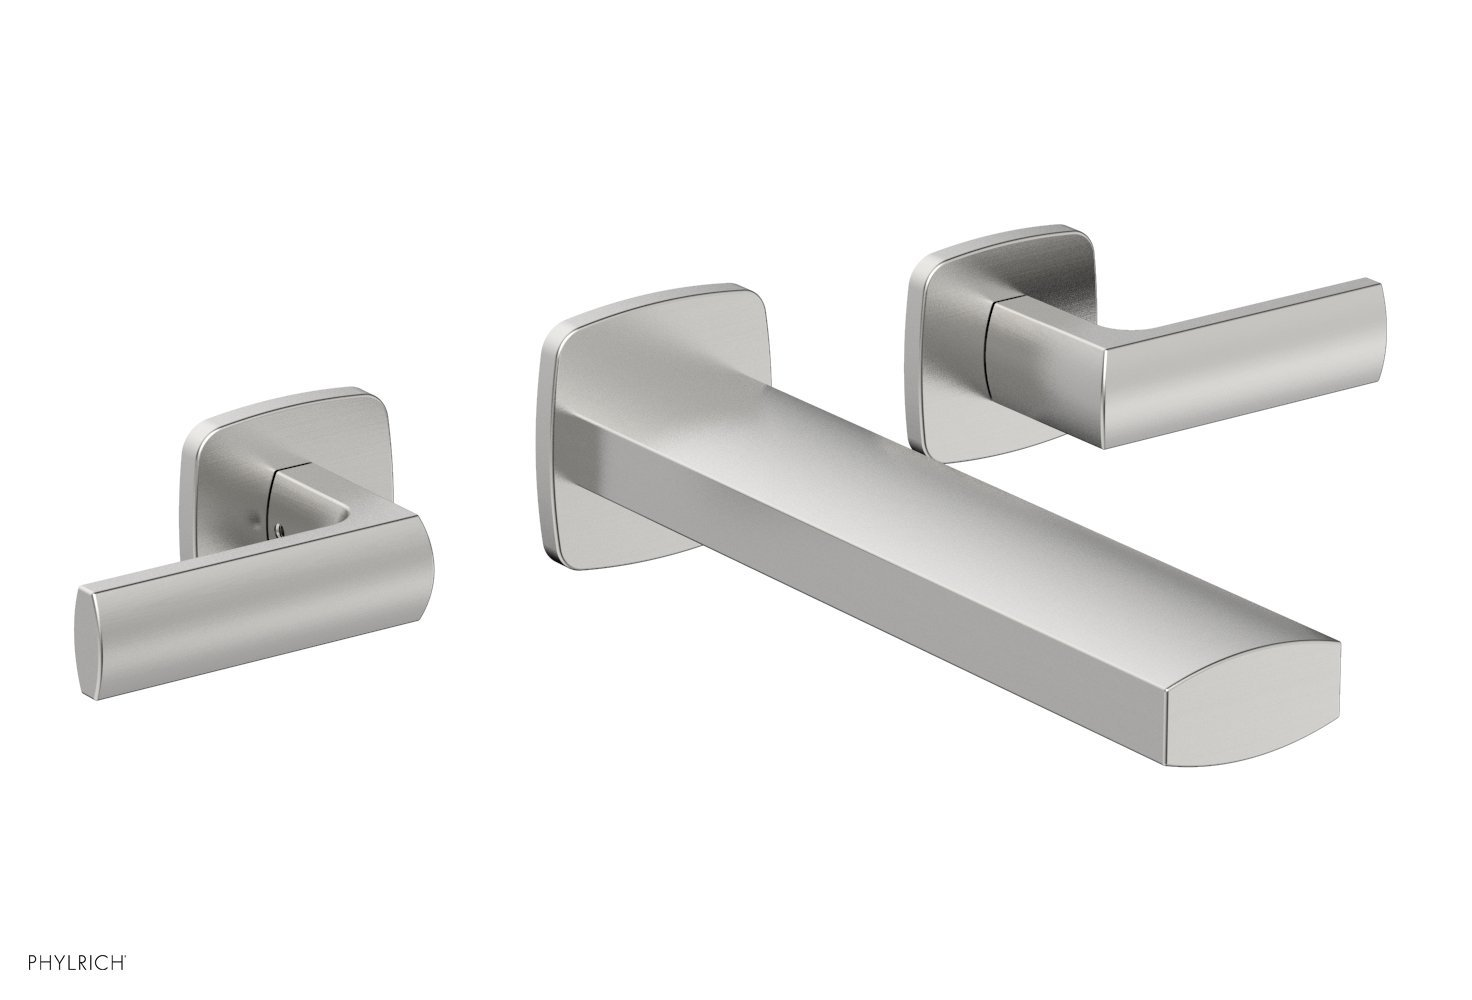 Phylrich 181-12-26D RADI Wall Lavatory Set - Lever Handles - Satin Chrome